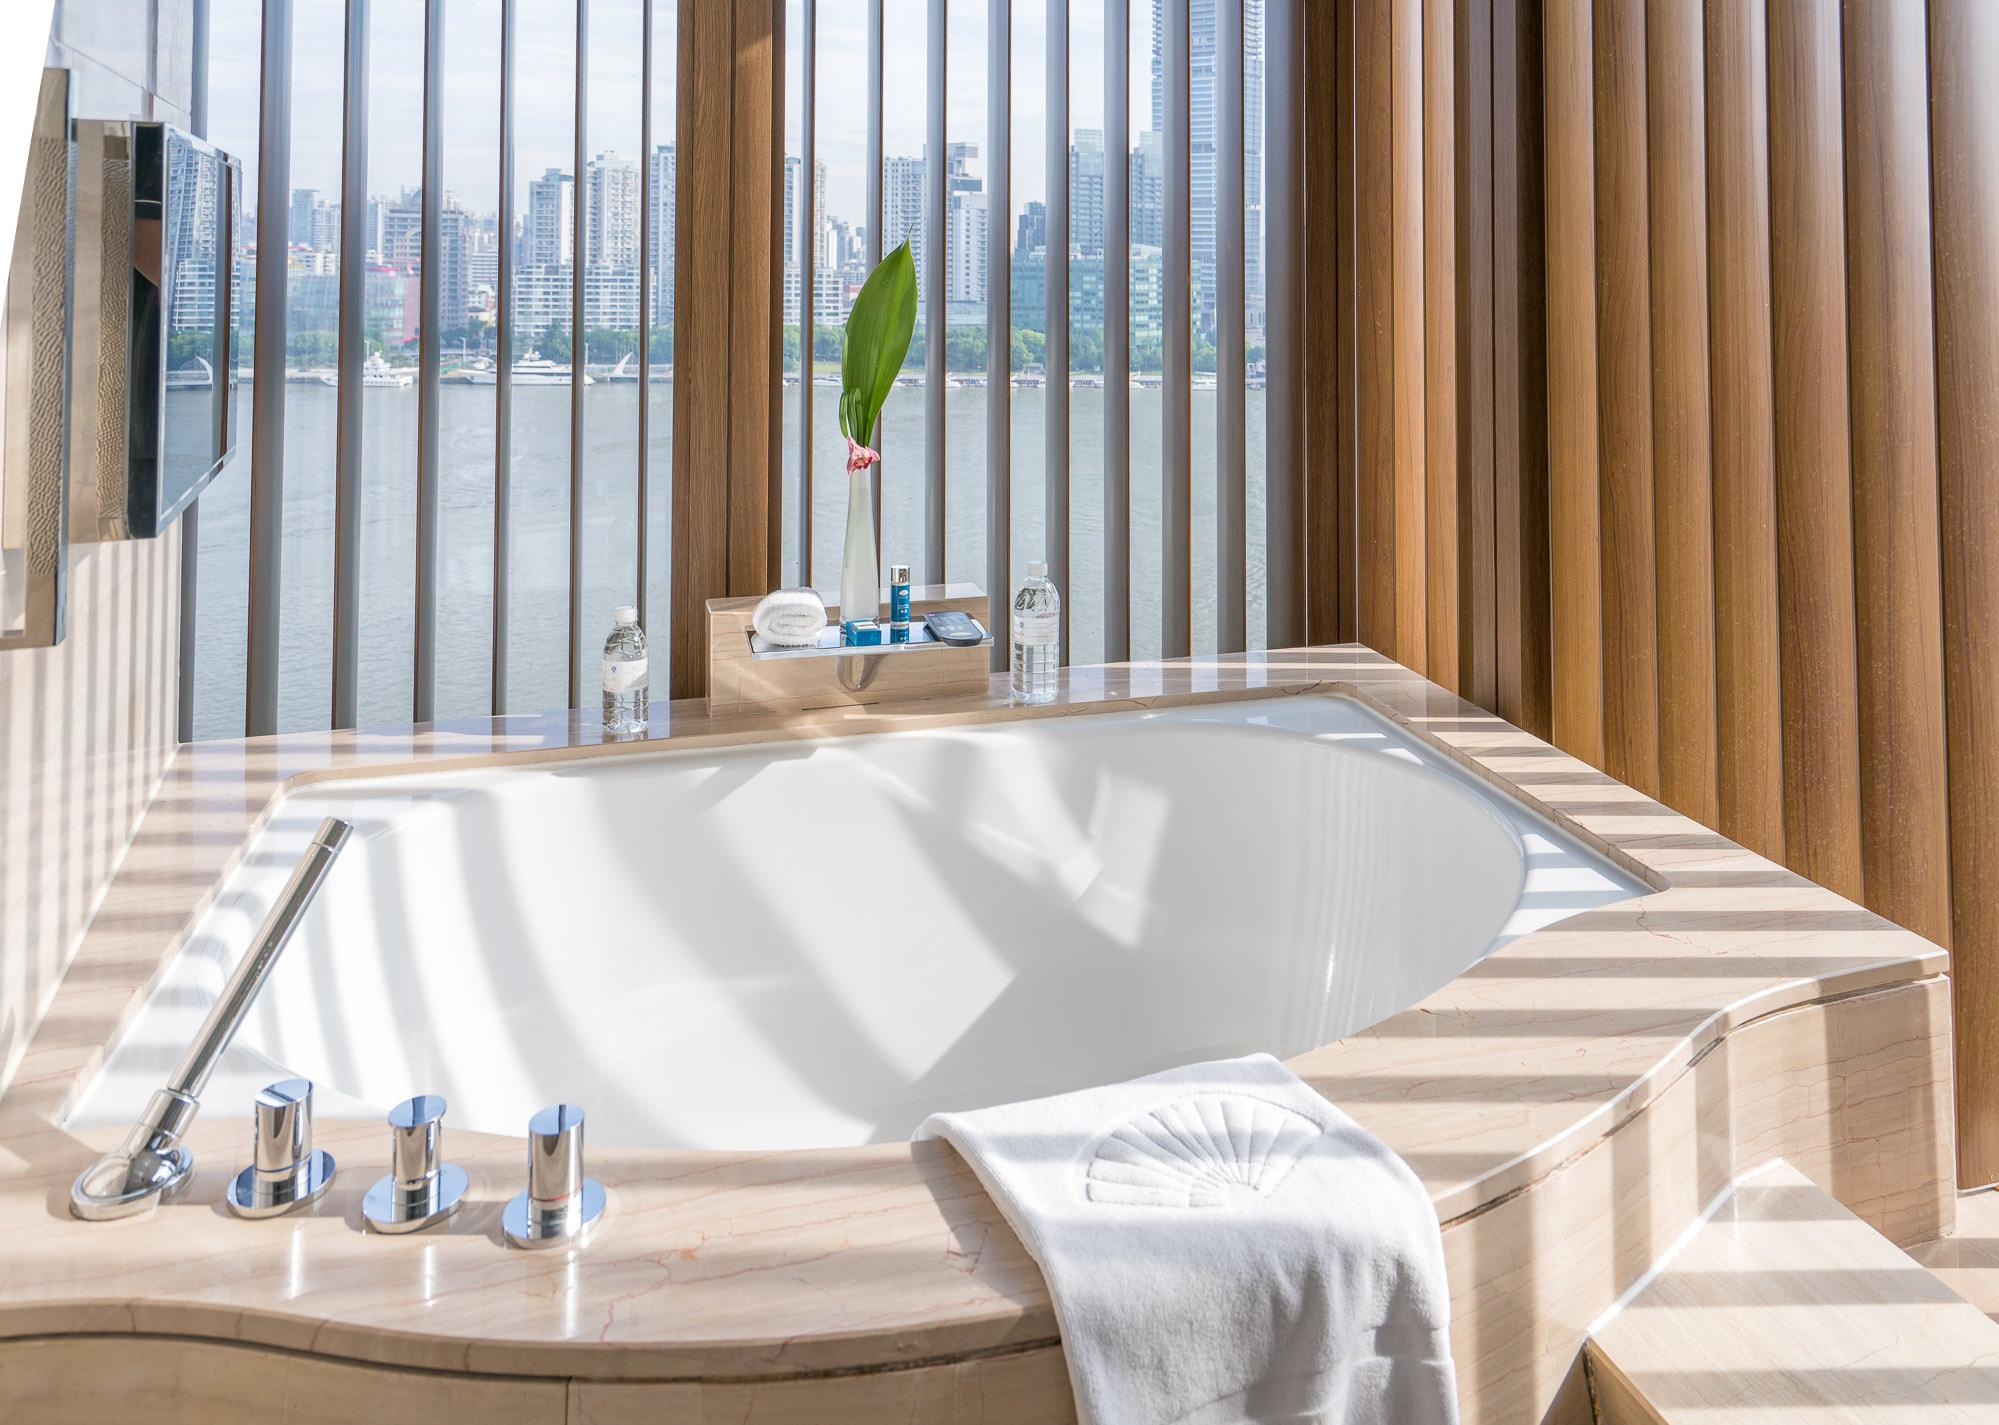 The views even from the bathtub at Mandarin Oriental Pudong, Shanghai are amazing.